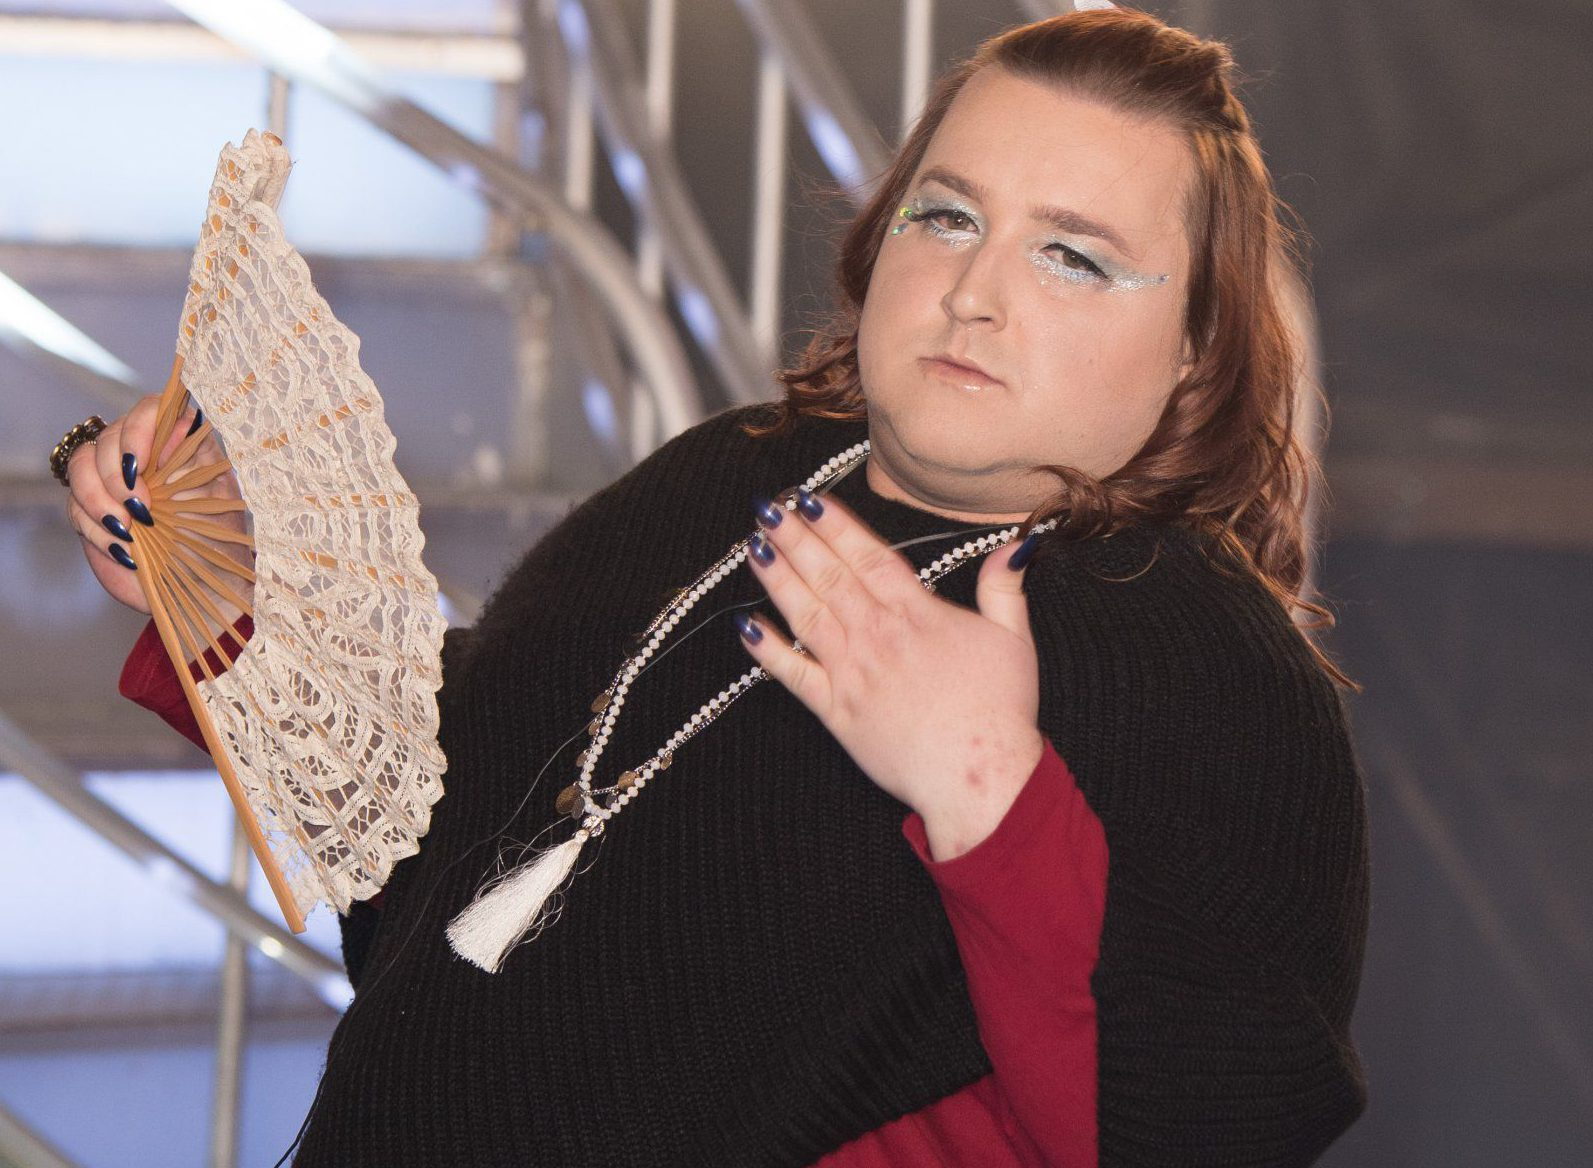 Tomasz Wania is evicted from Big Brother